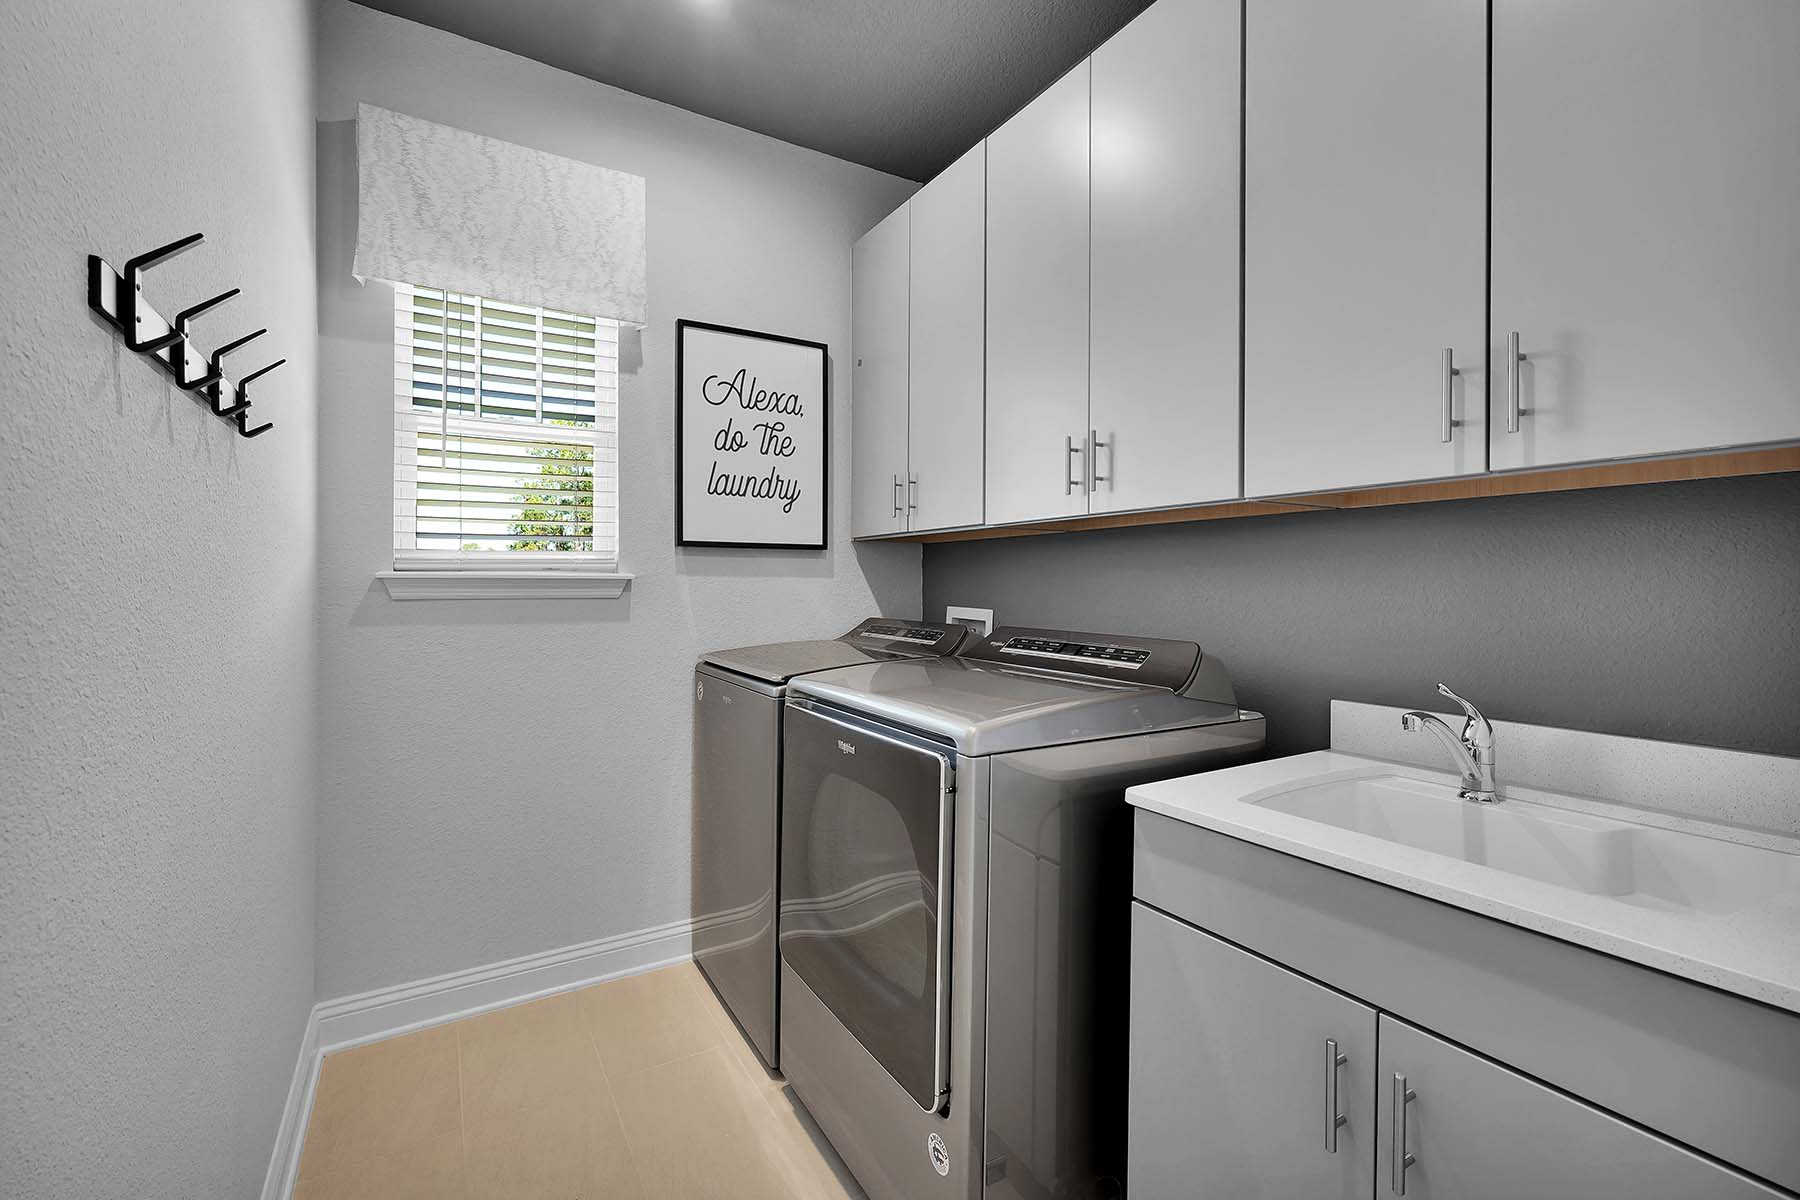 Waverly Plan Laundry at Pablo Cove in Jacksonville Florida by Mattamy Homes